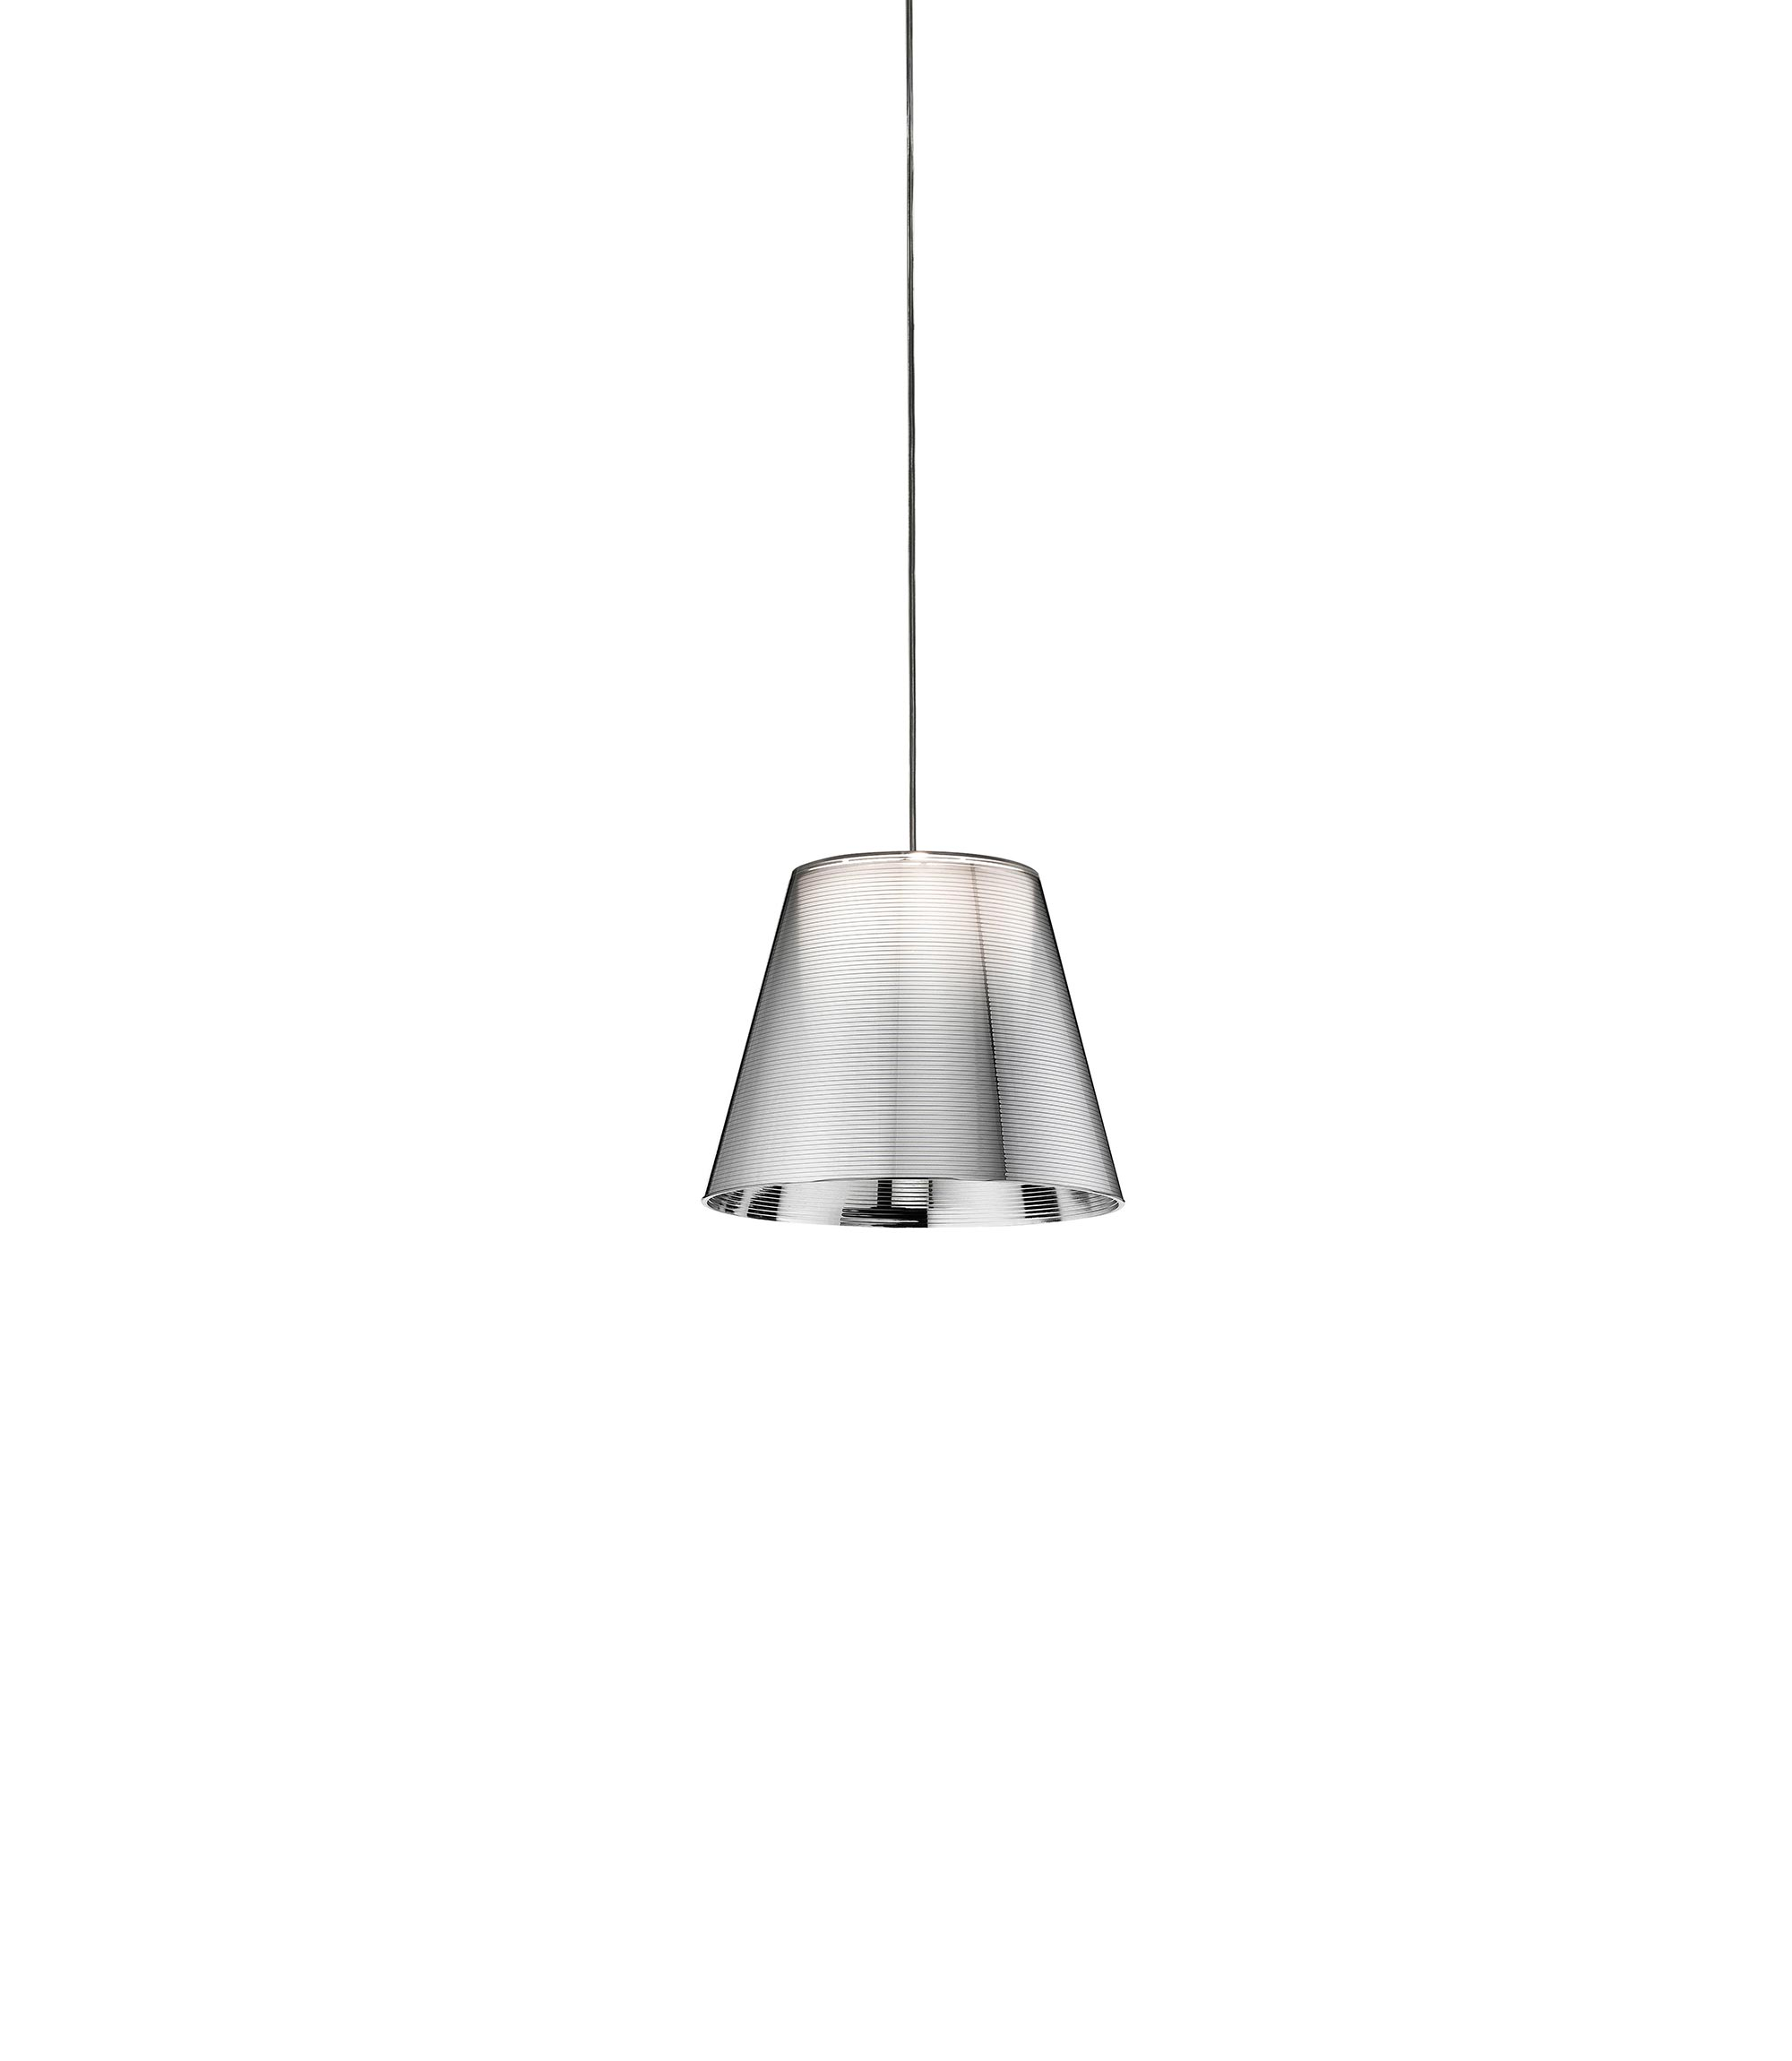 Ktribe suspension 1 starck flos F6256000 product still life big